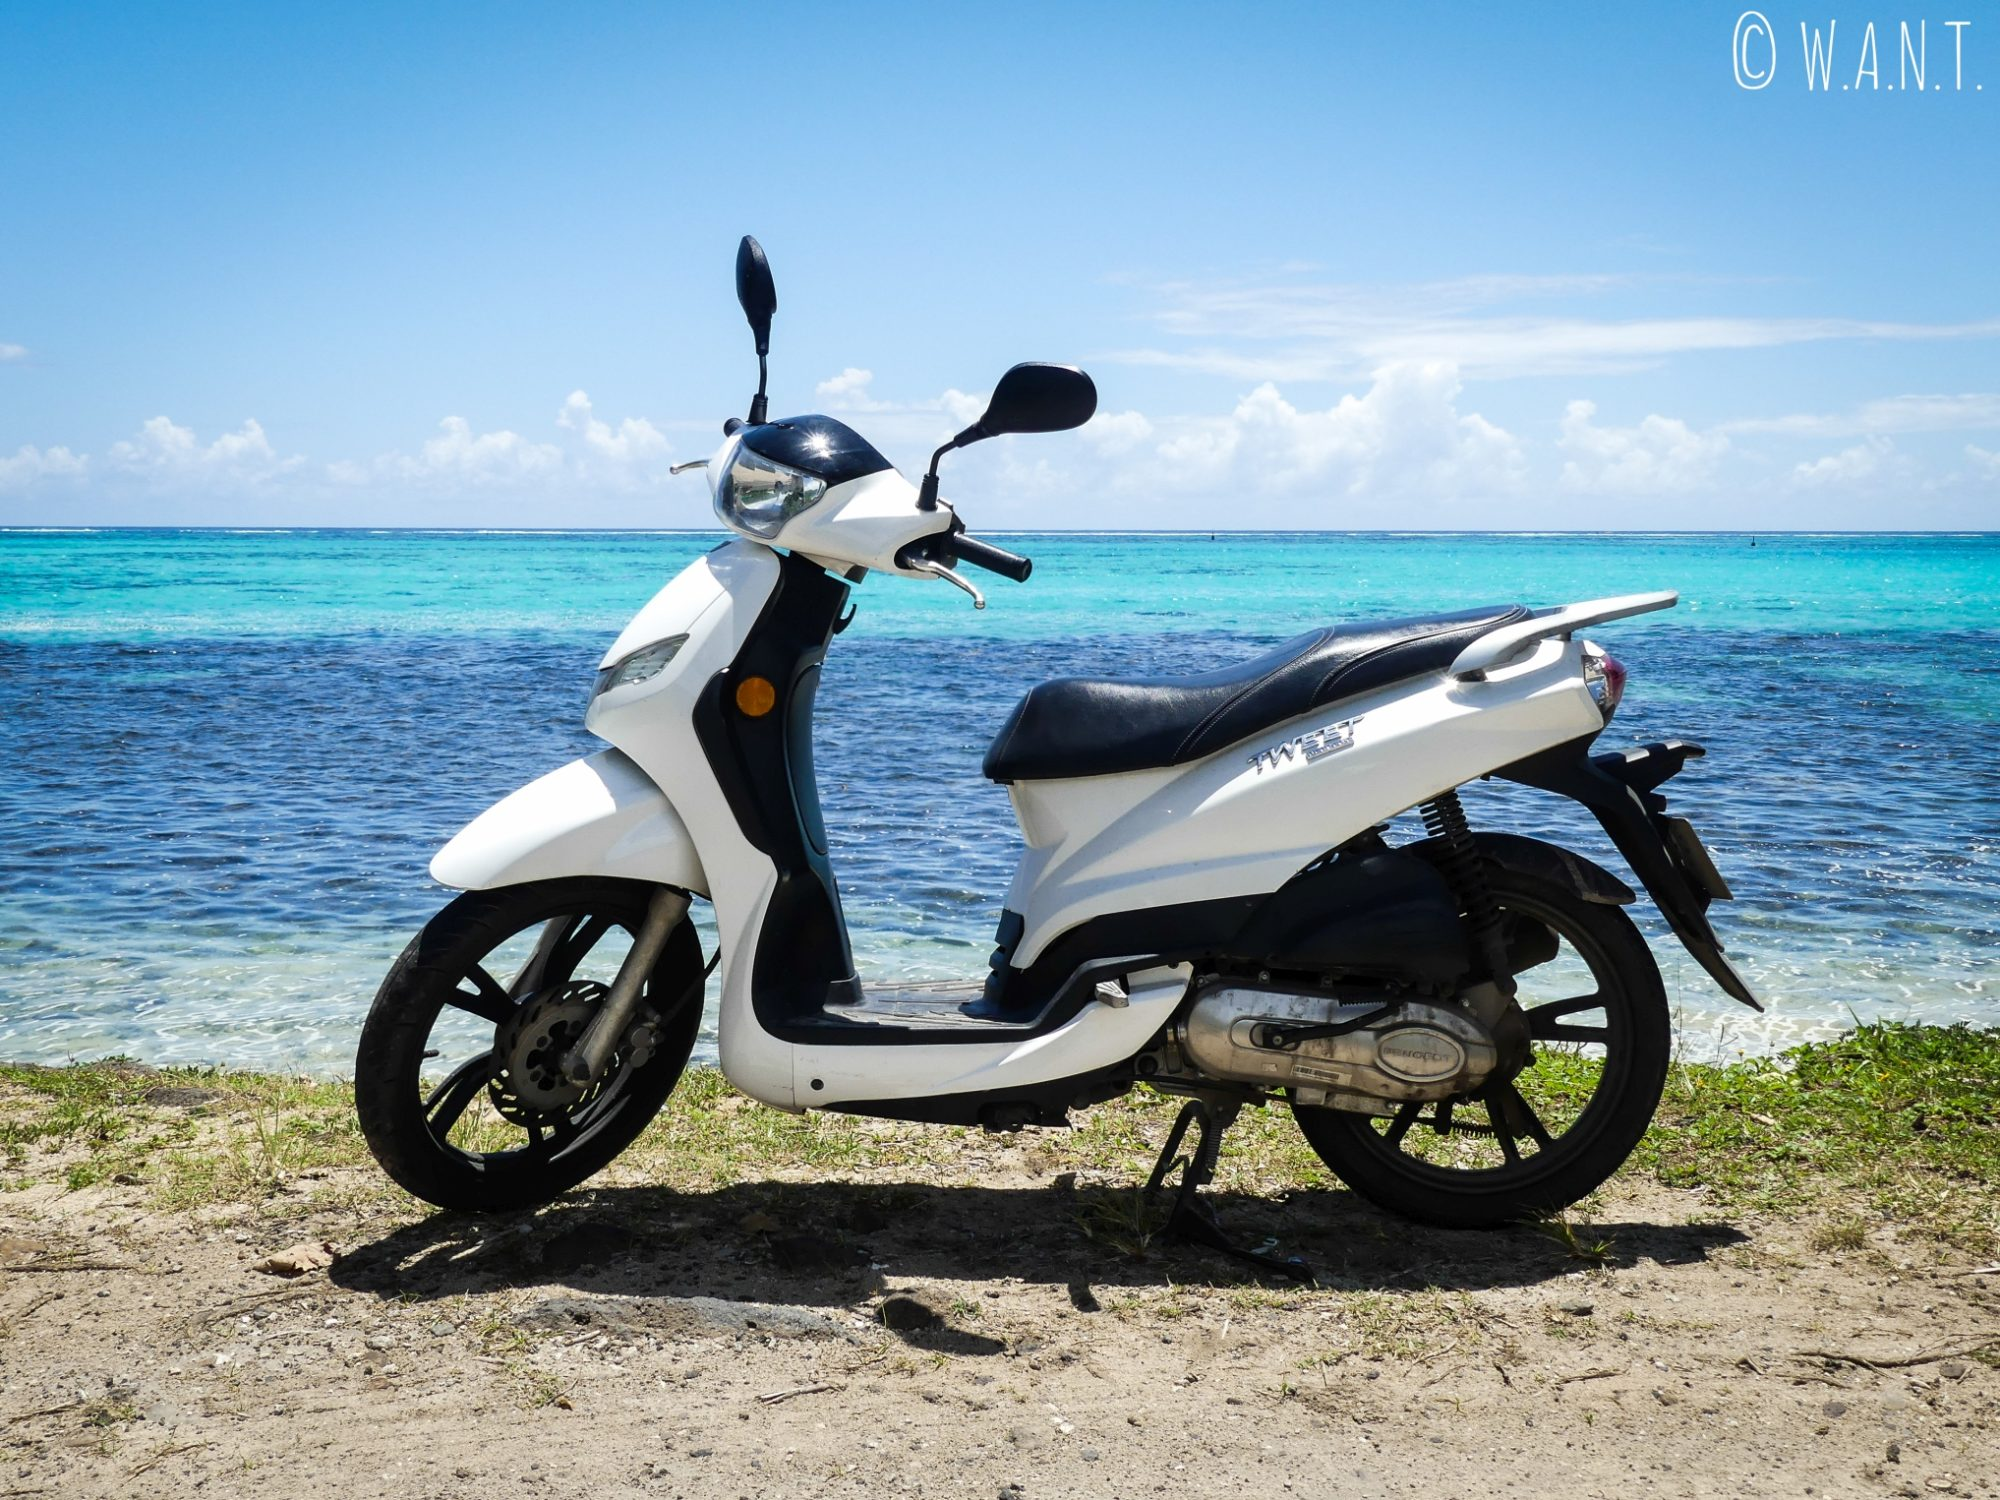 Le scooter, le mode de transport le plus adapté à l'île de Moorea